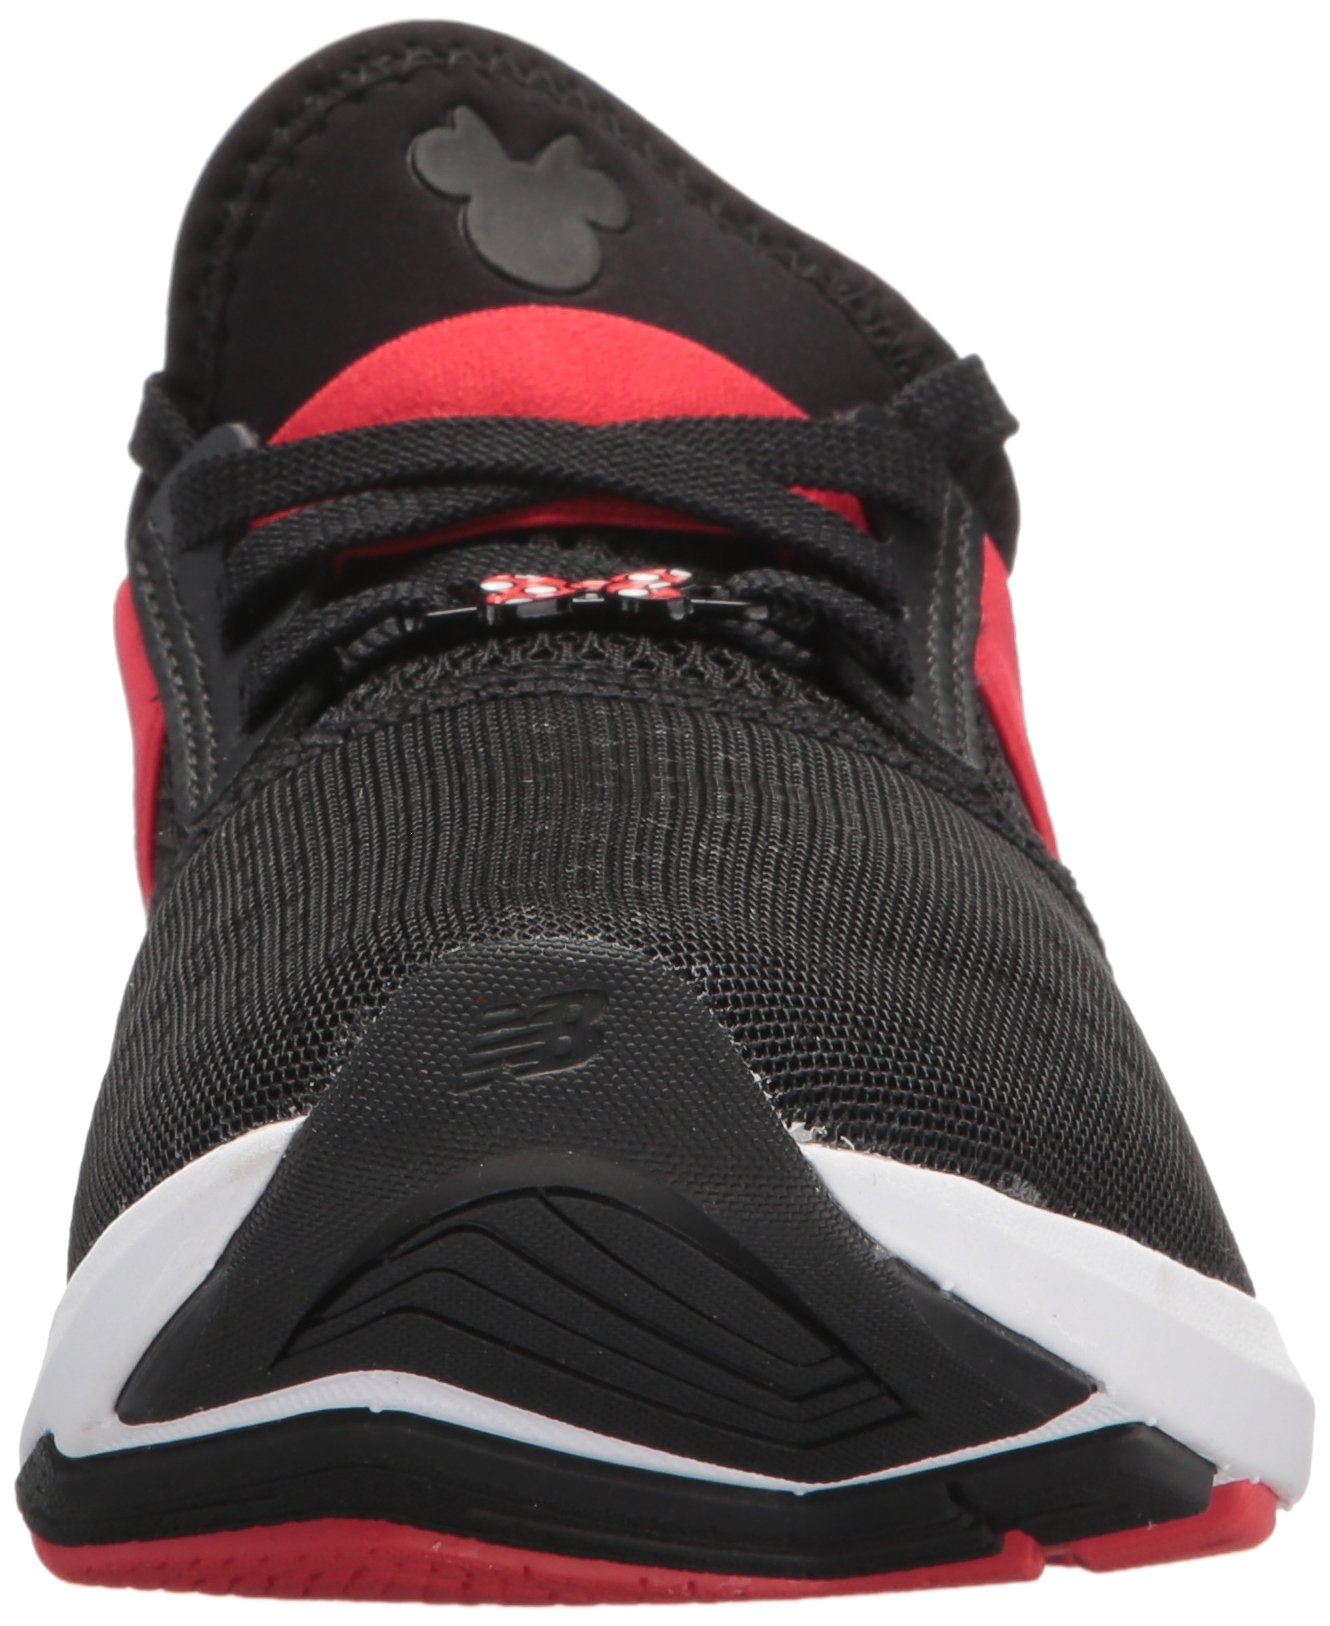 New Balance Women's Nergize V1 Fuelcore Disney Cross Trainer, Black/Red, 85 B US by New Balance (Image #4)